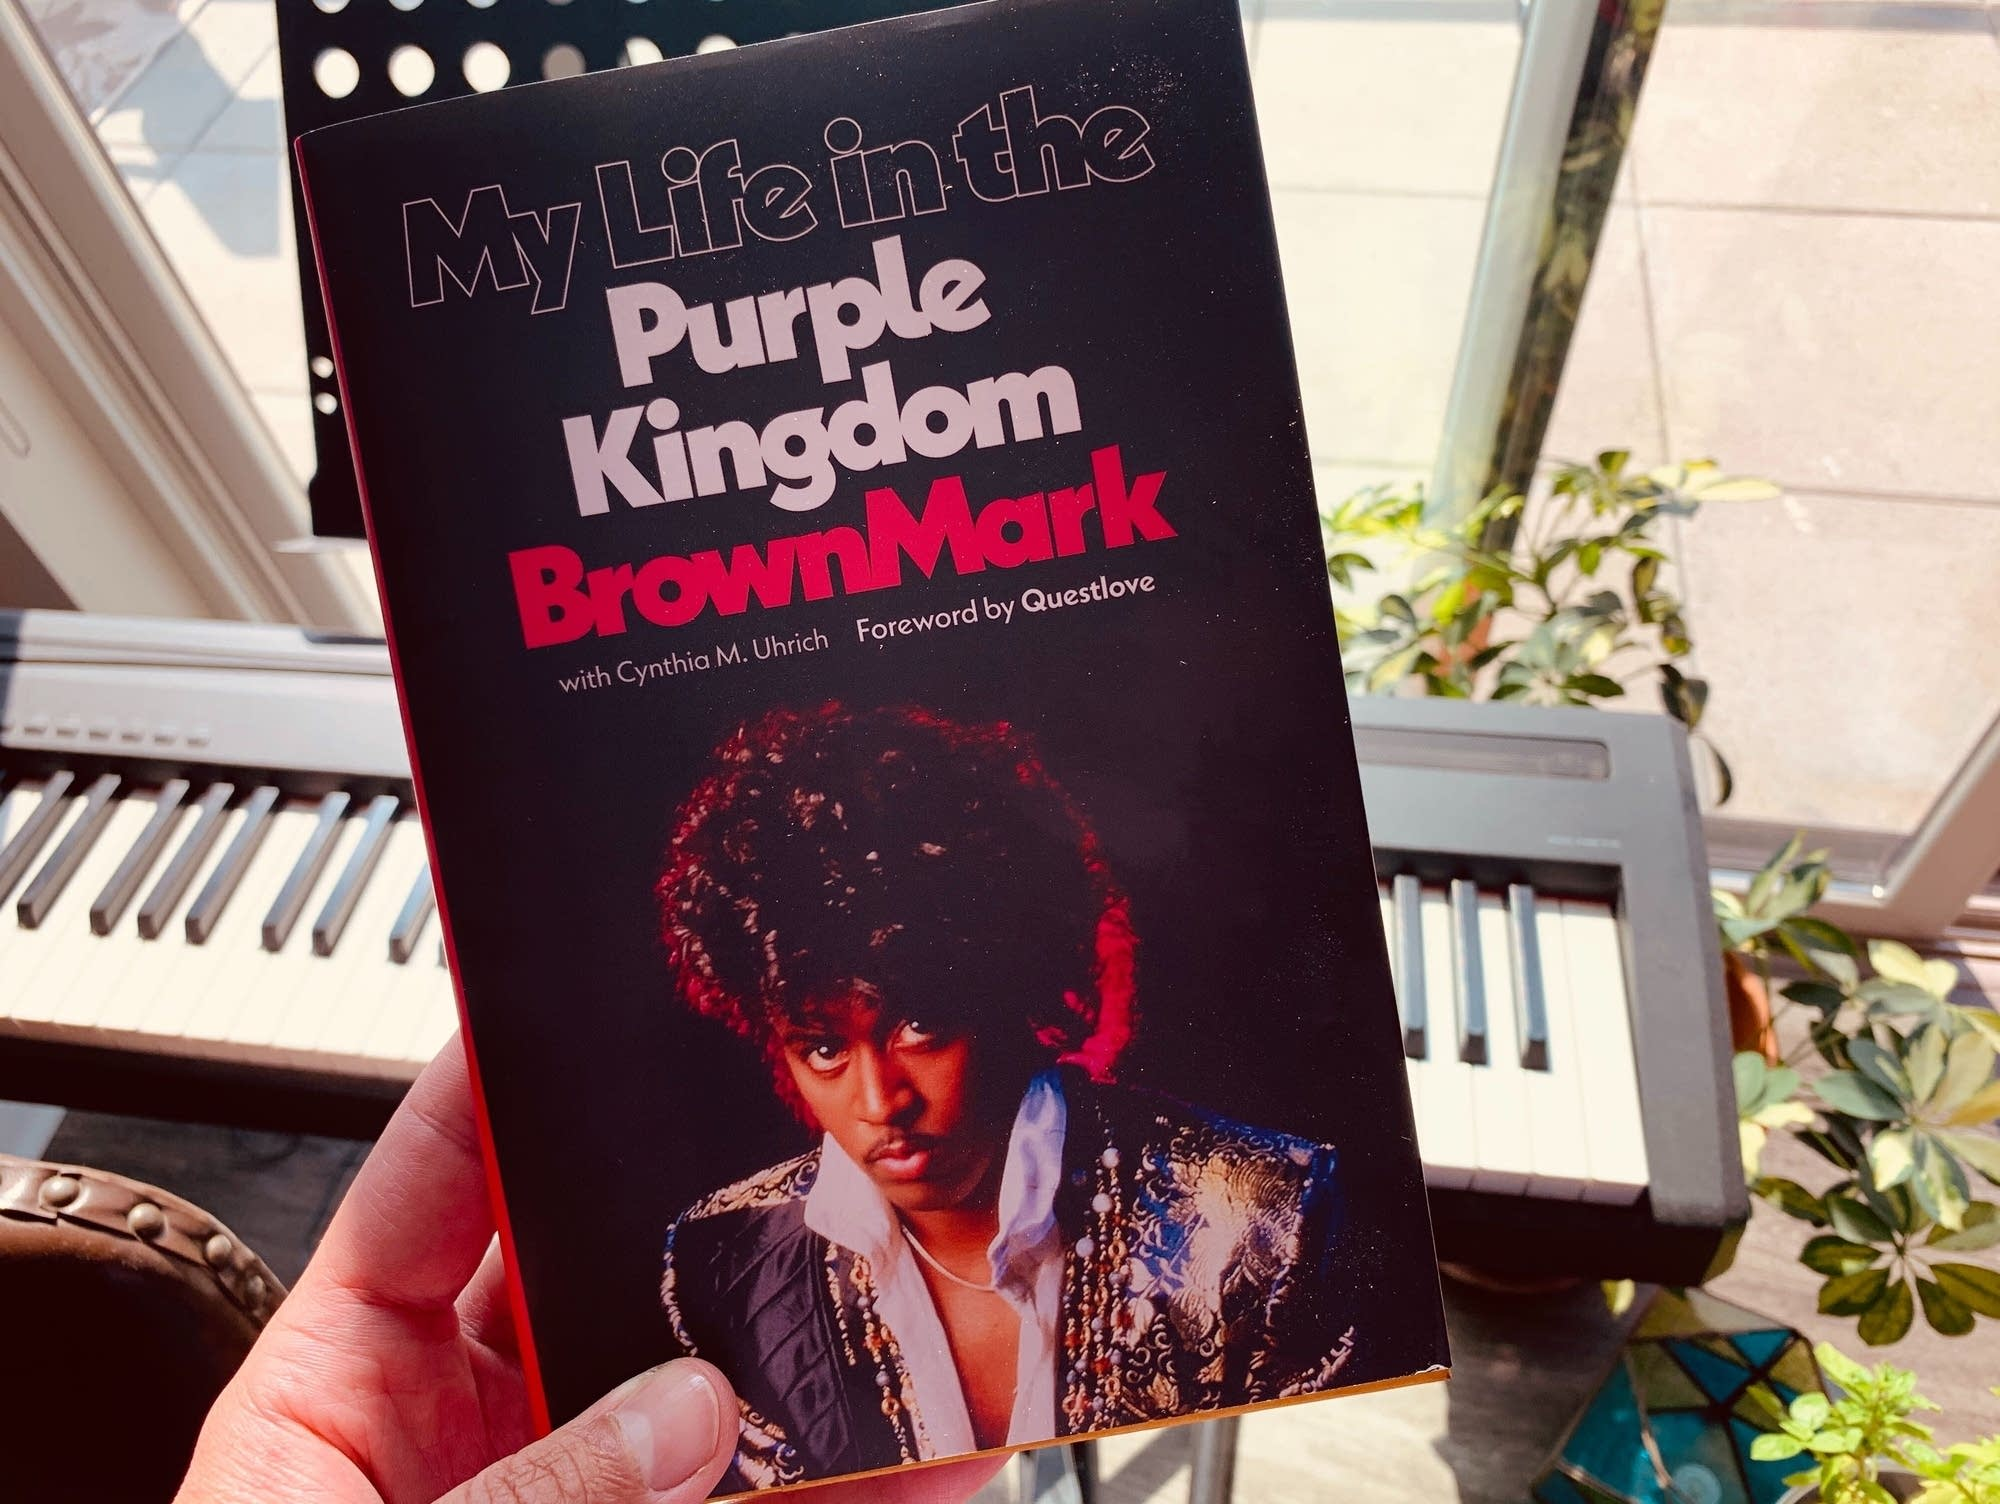 BrownMark's 'My Life in the Purple Kingdom.'